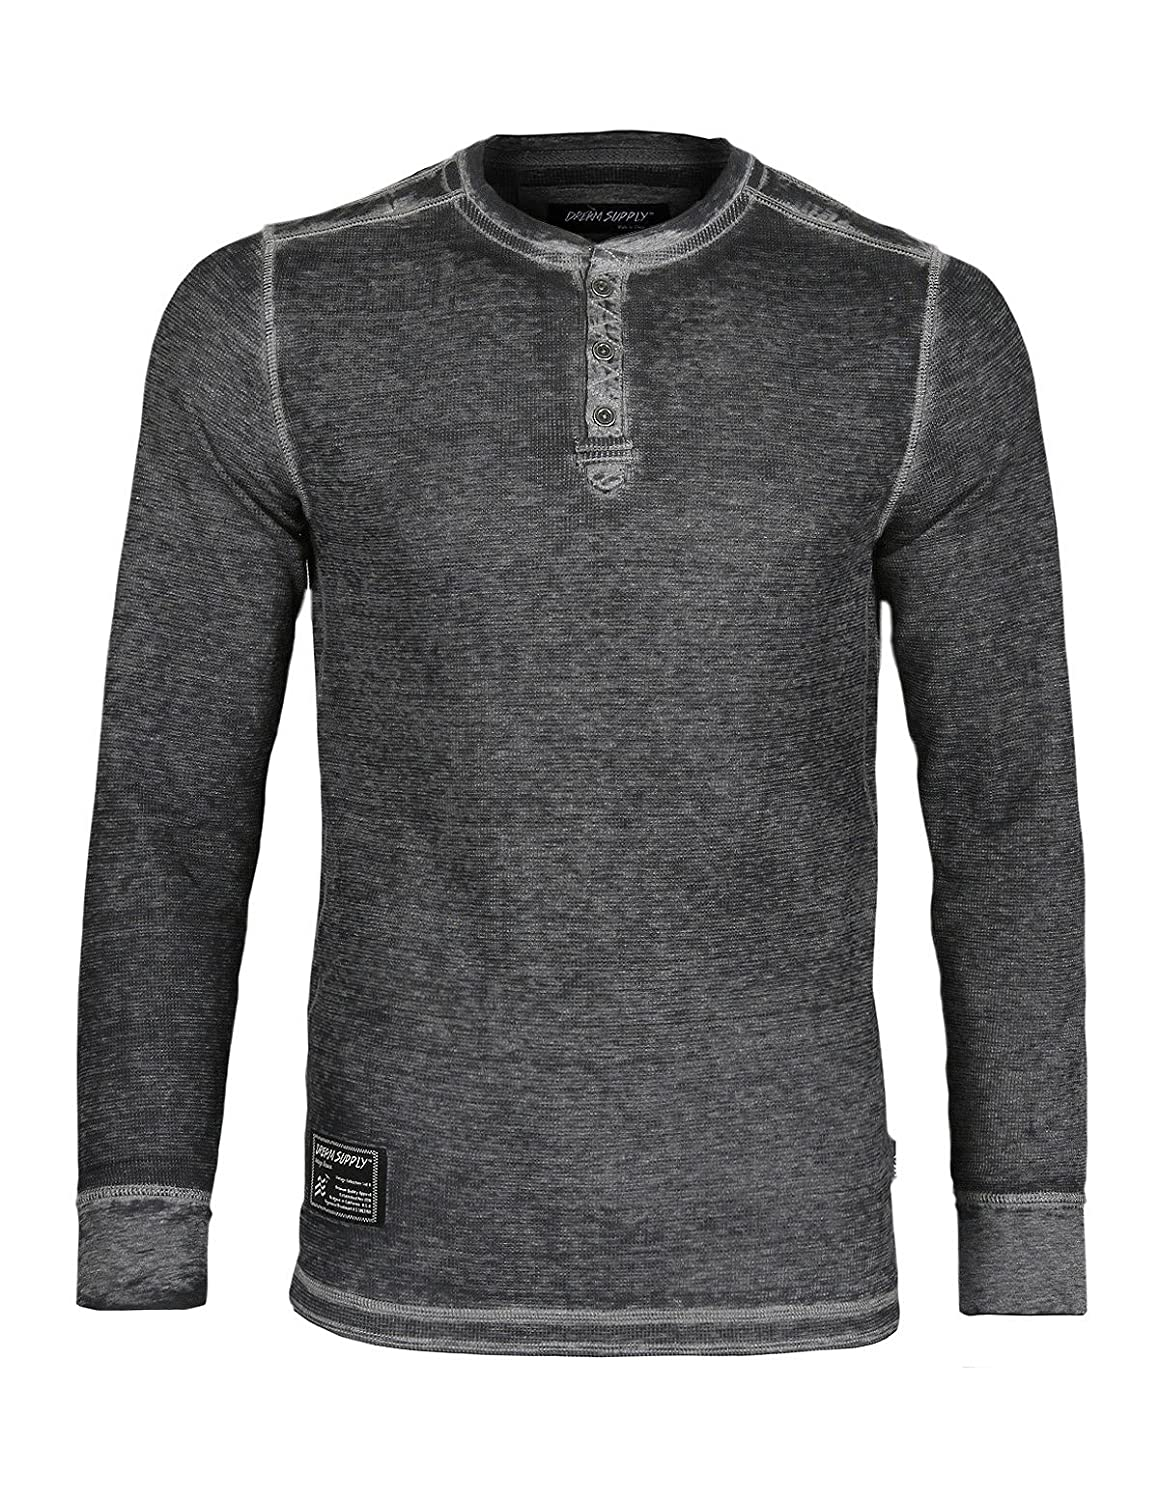 ZIMEGO Men's Casual Long Sleeve Lightweight Burnout Thermal and Heather Henley